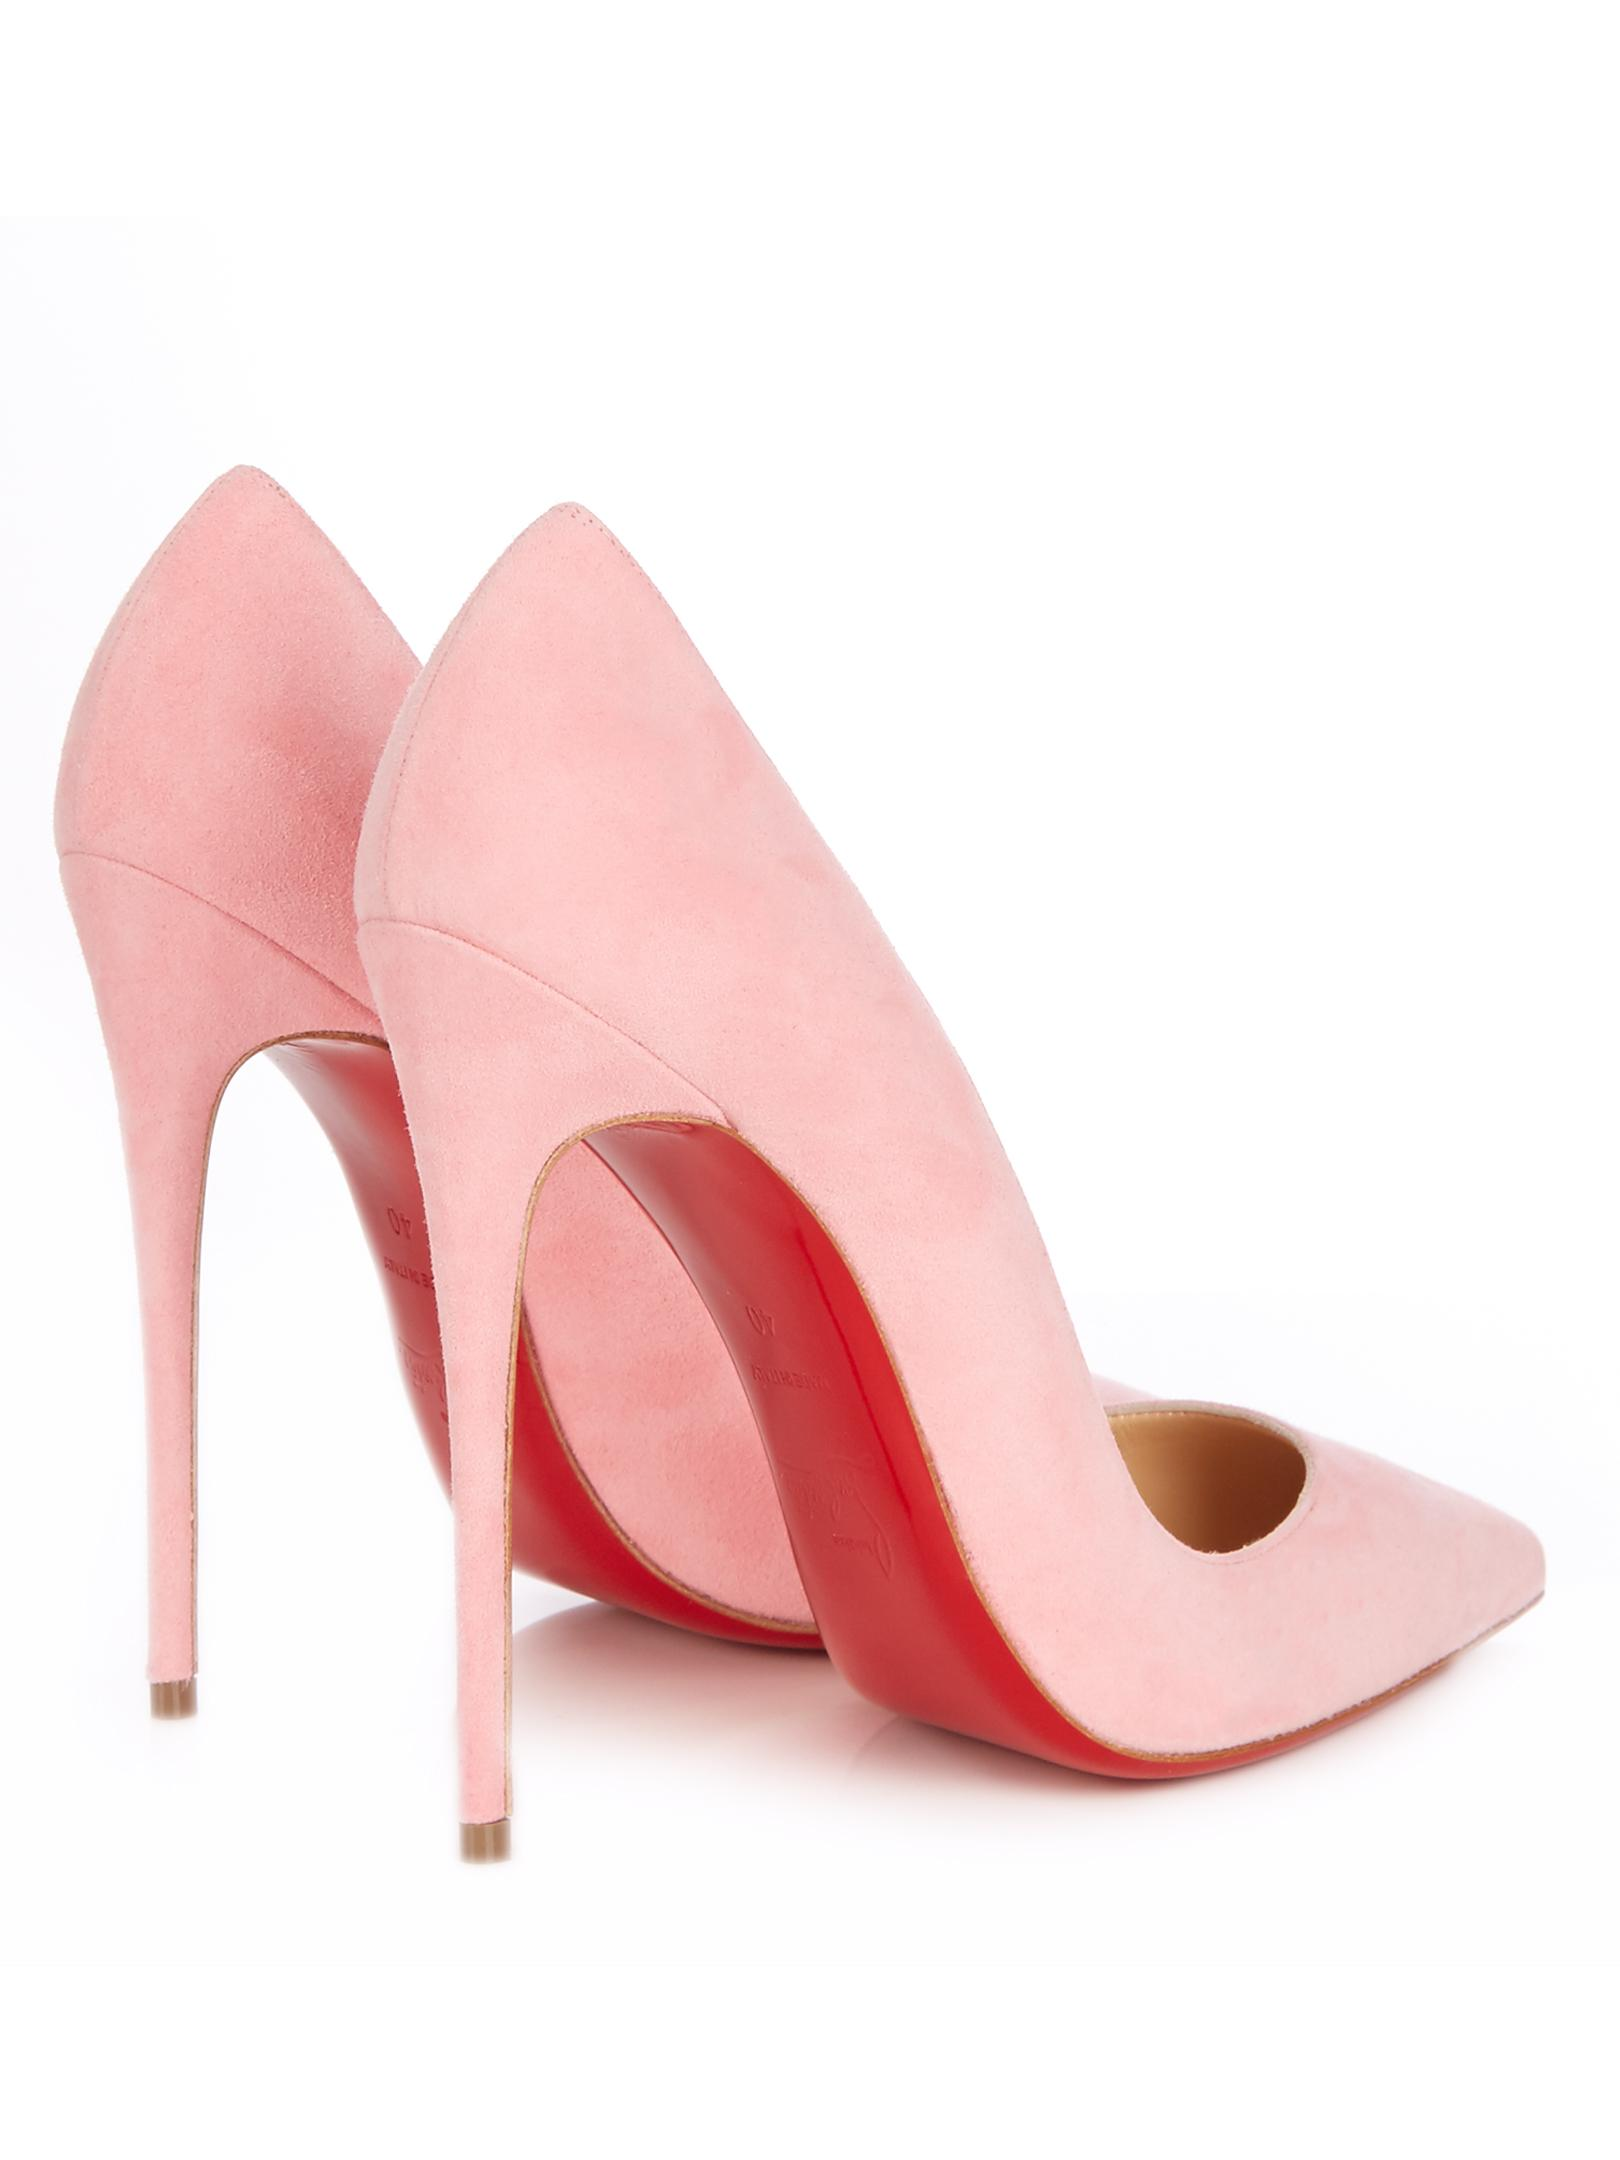 ec47bc73e57 Christian Louboutin Pink So Kate suede 120mm Pumps